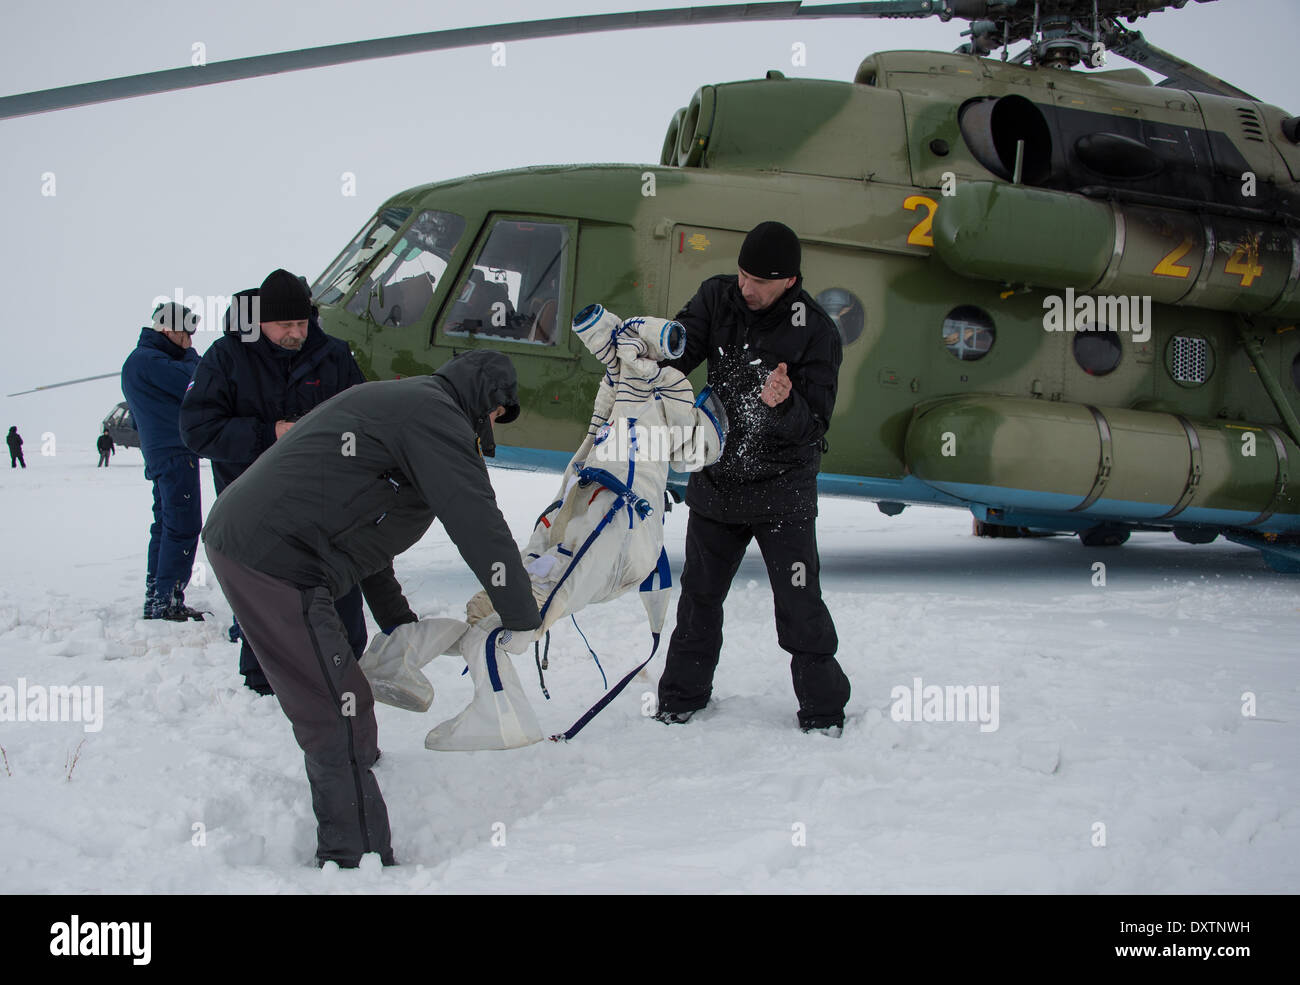 Expedition 38 Soyuz TMA-10M Landing - Stock Image